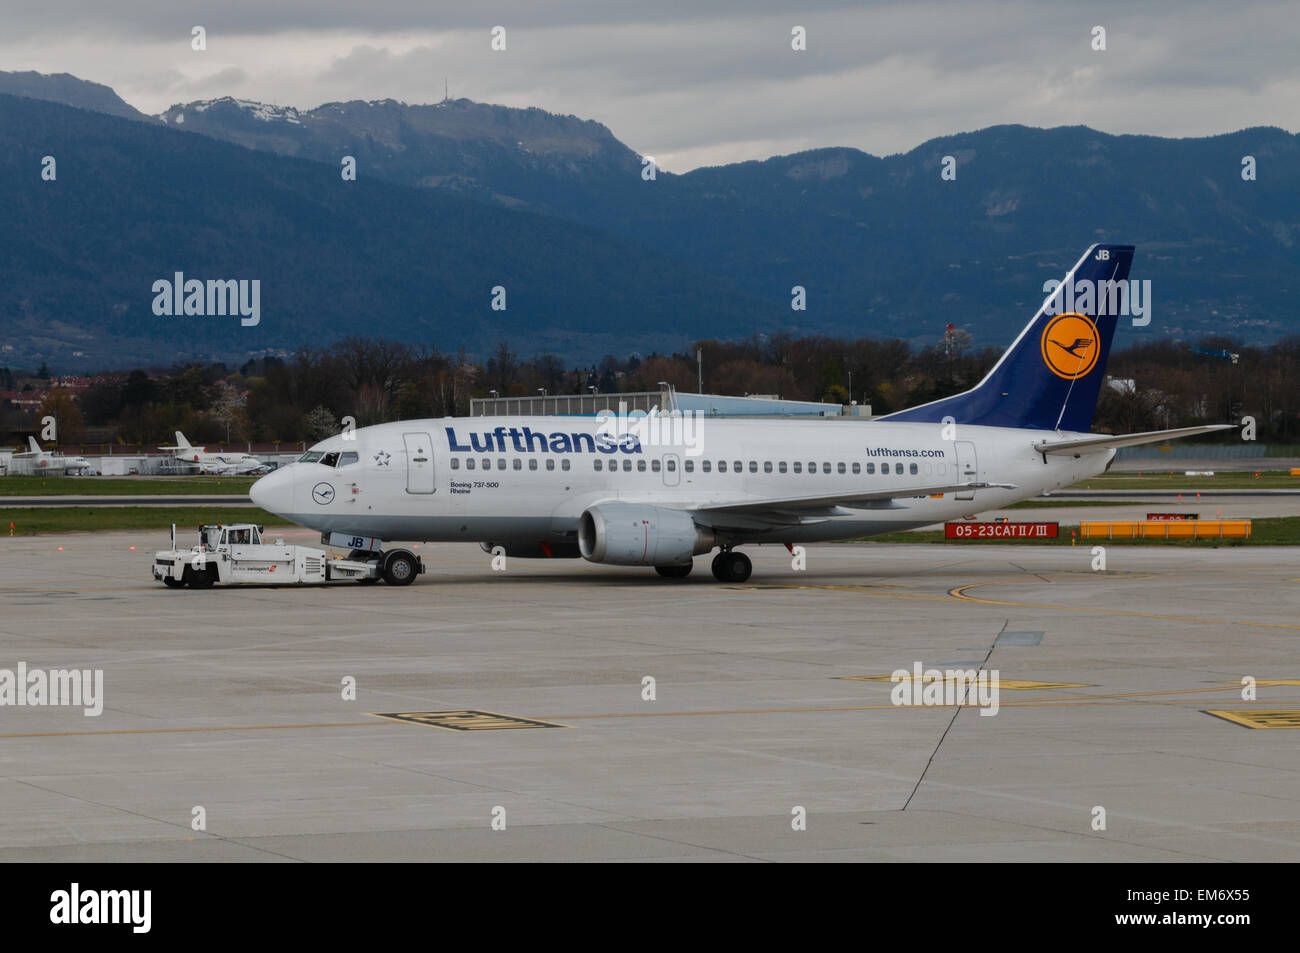 A Lufthansa Boeing 737 being towed along a taxiway  at Geneva airport. - Stock Image